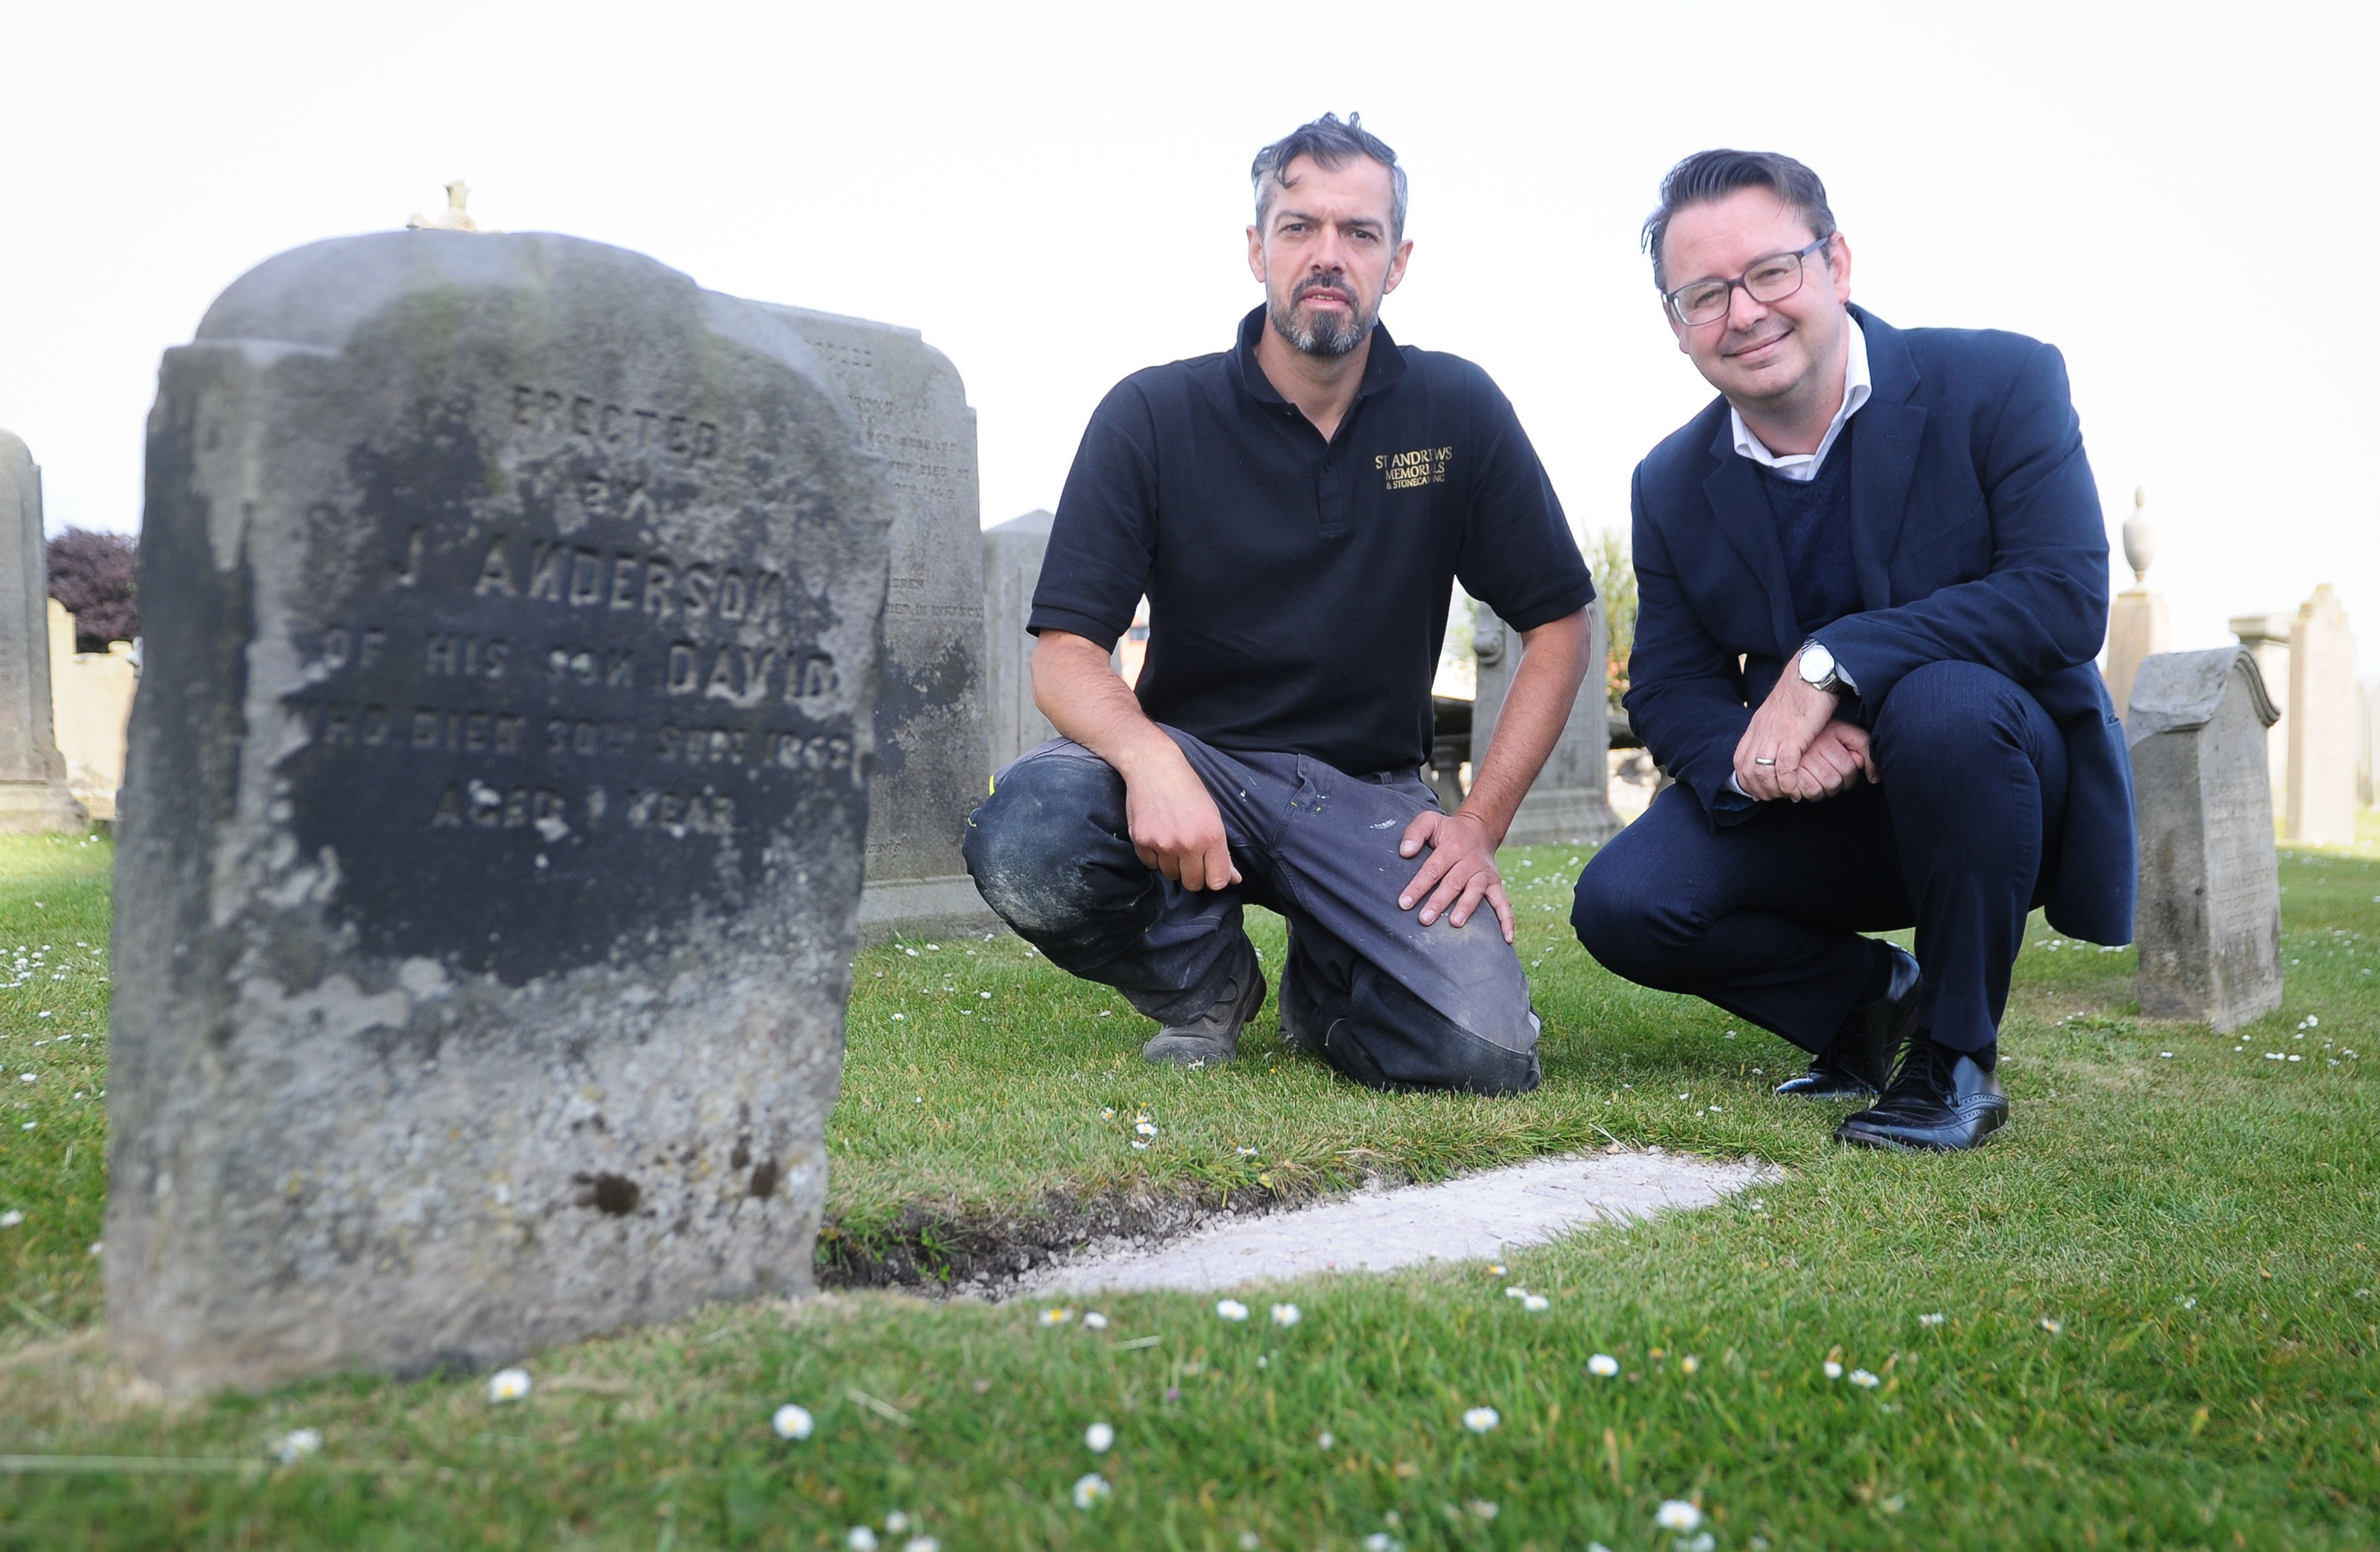 St Andrews stonemason Mark Ritchie (left) with golf historian Roger McStravick next to the gravestone in St Andrews Cathedral that was erected by Jamie Anderson for his infant son.